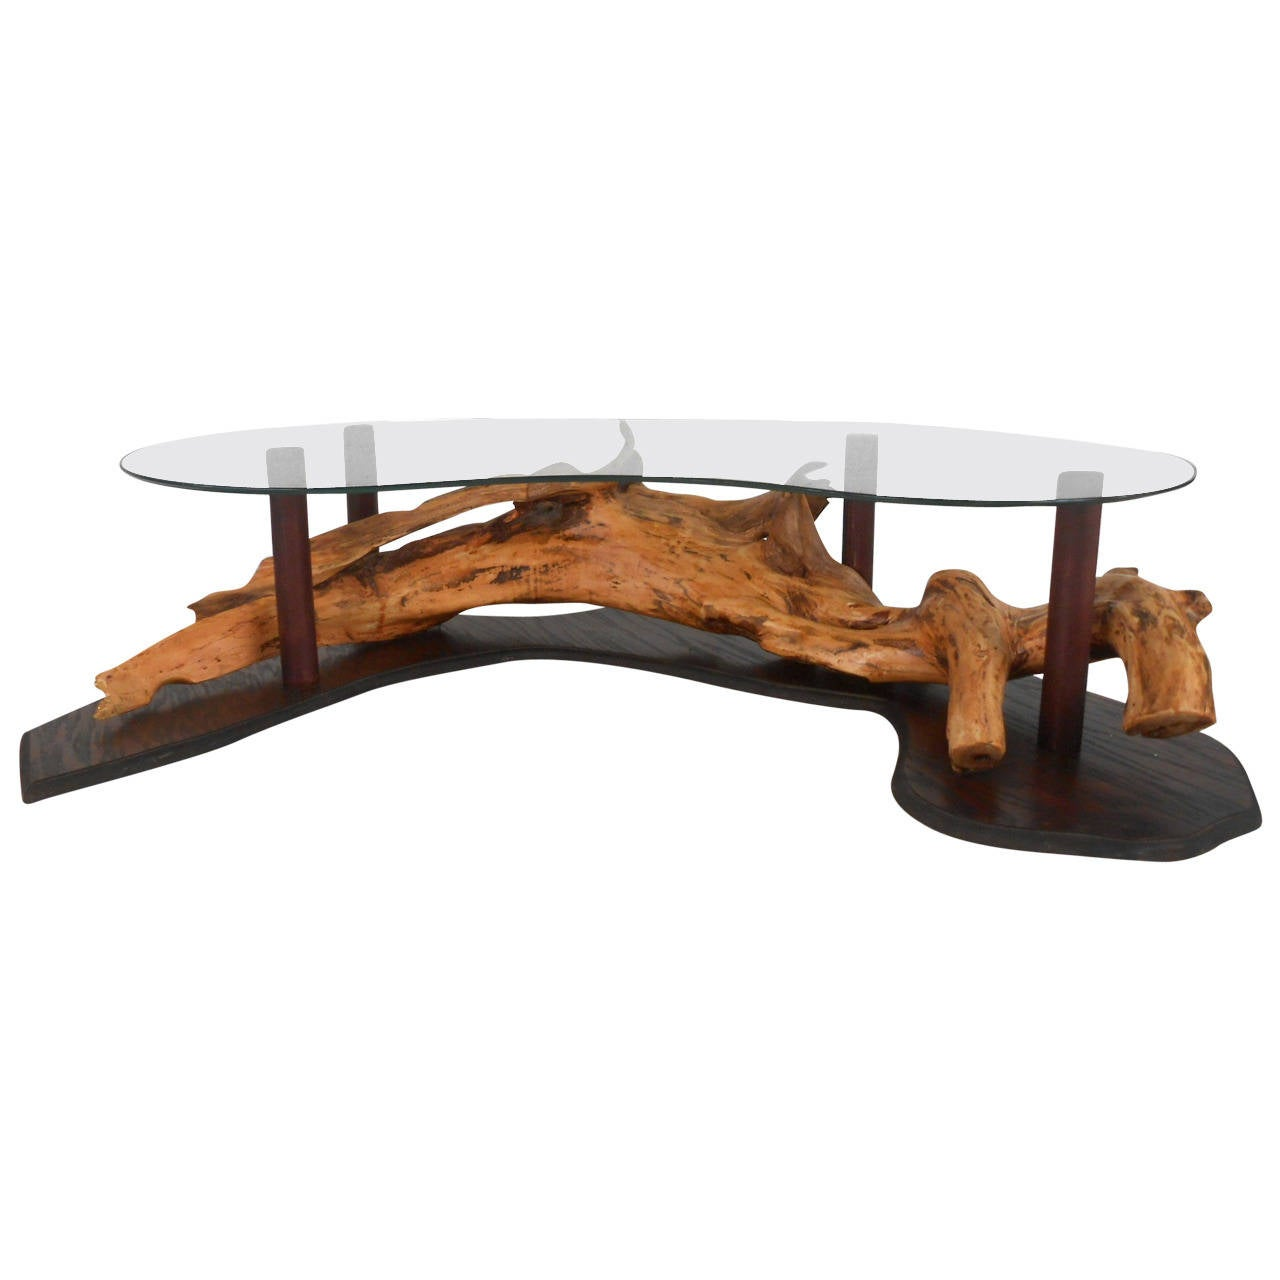 Unique mid century modern rustic driftwood coffee table for sale at 1stdibs One of a kind coffee tables